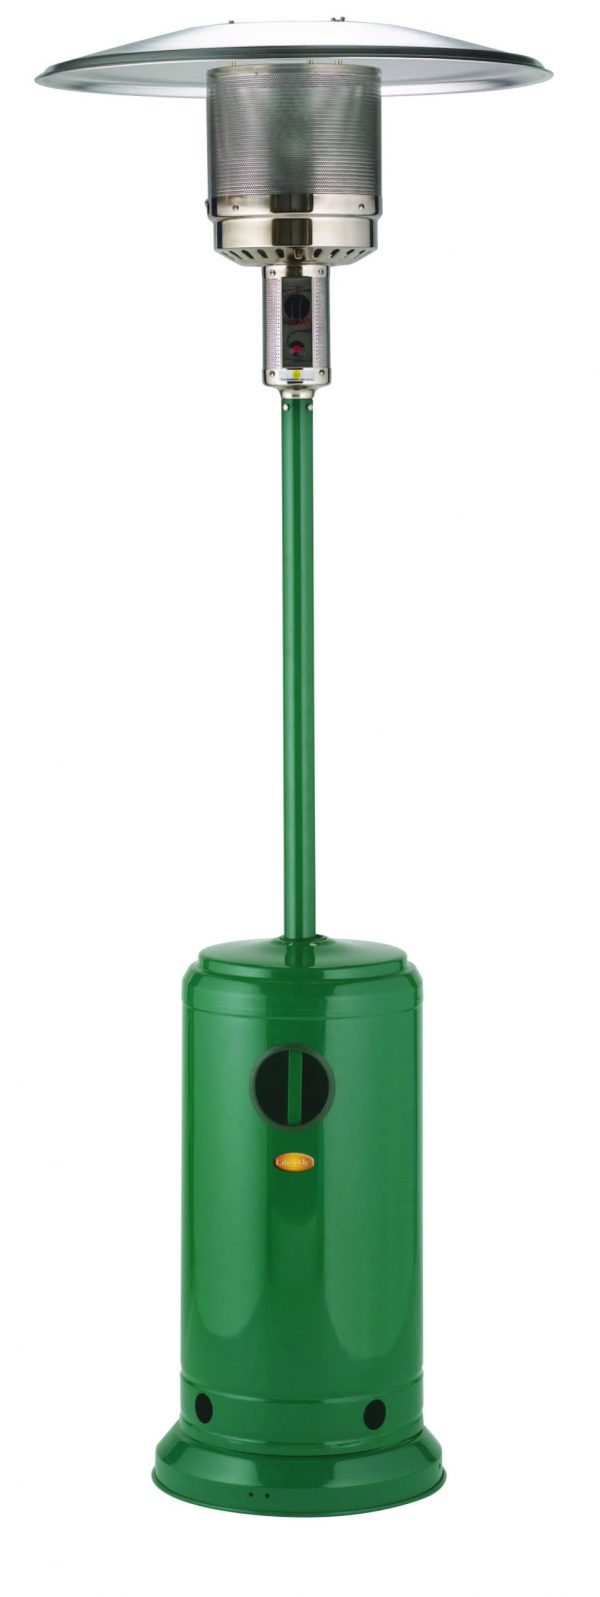 Lifestyle Orchid Green 13kw Patio Heater